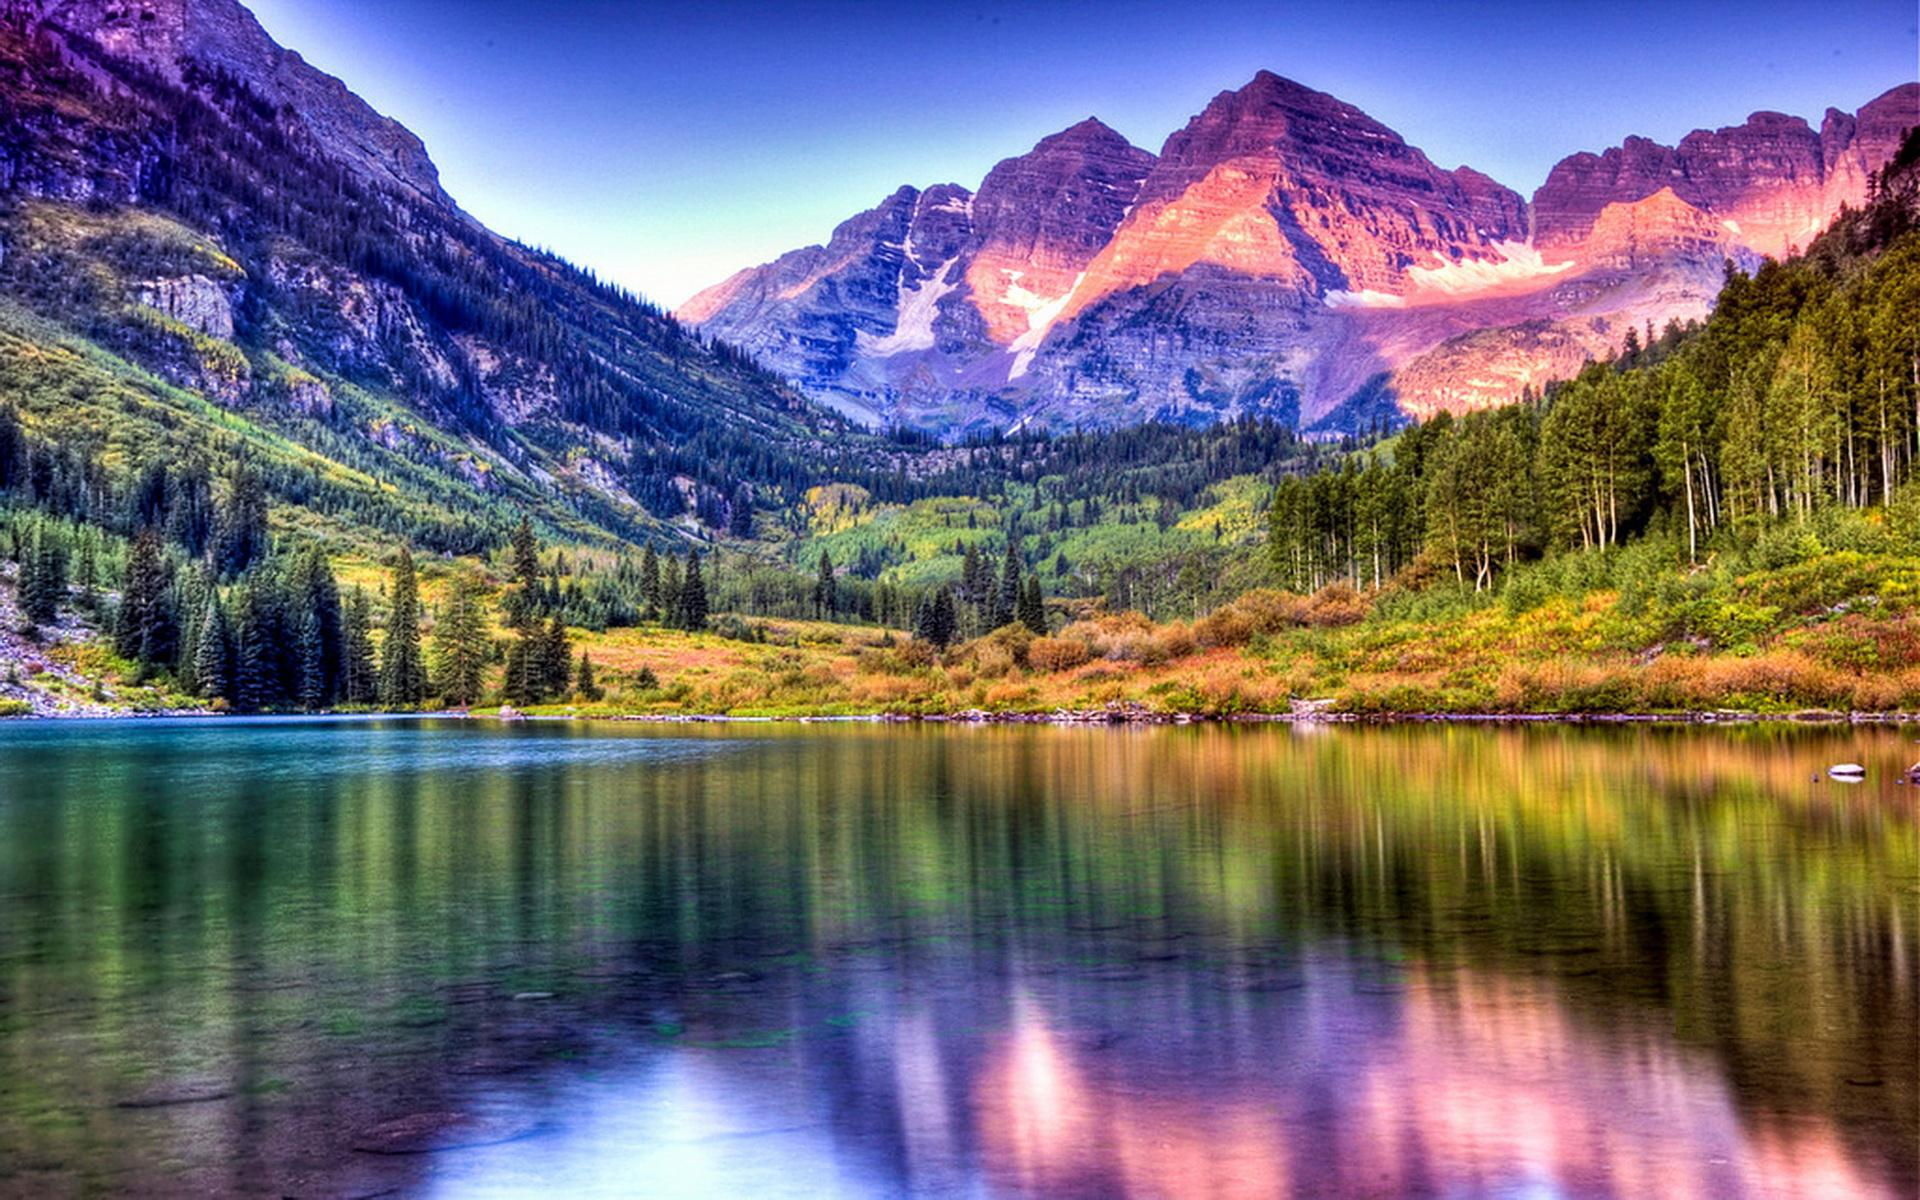 Maroon Bells Lake at Sunrise Colorado HQ Wallpaper